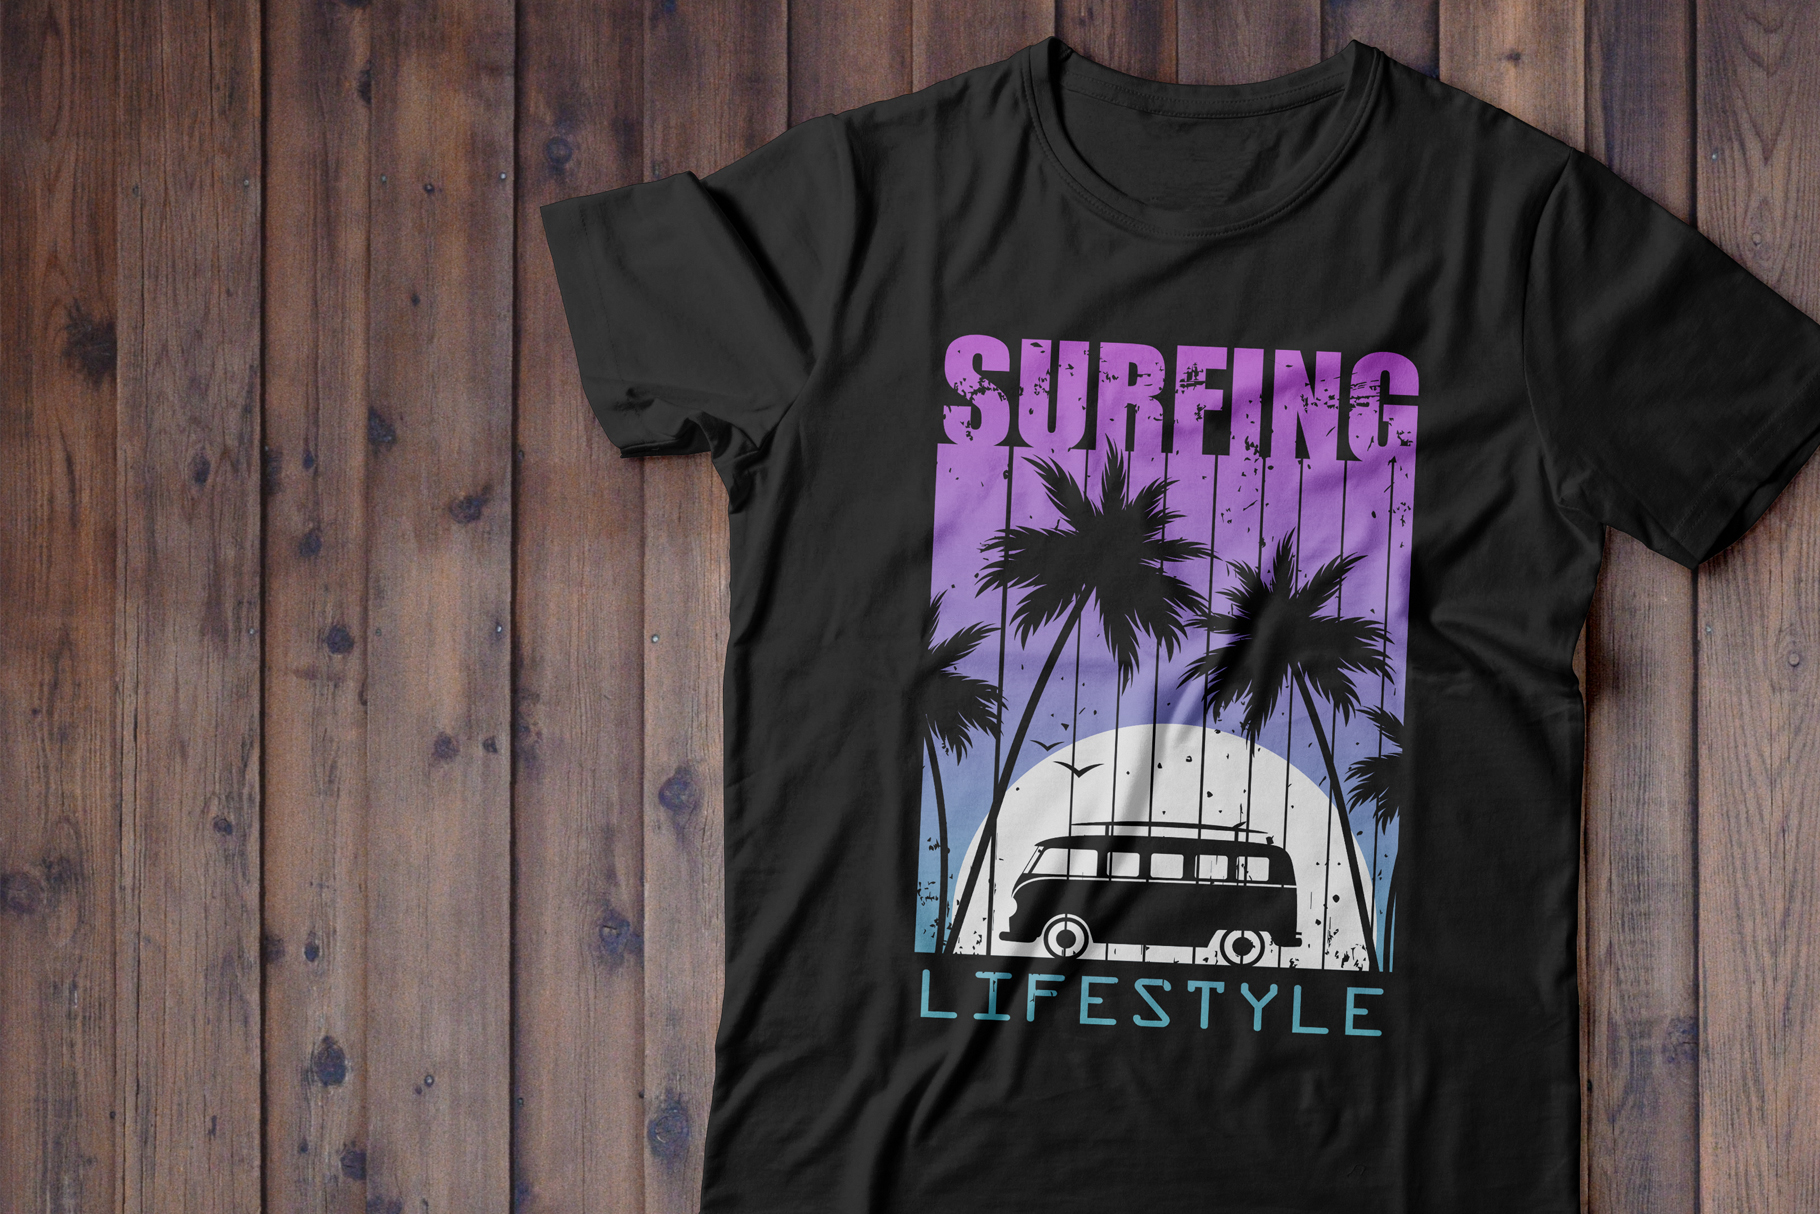 Night Surfing.Print for T-shirt example image 1